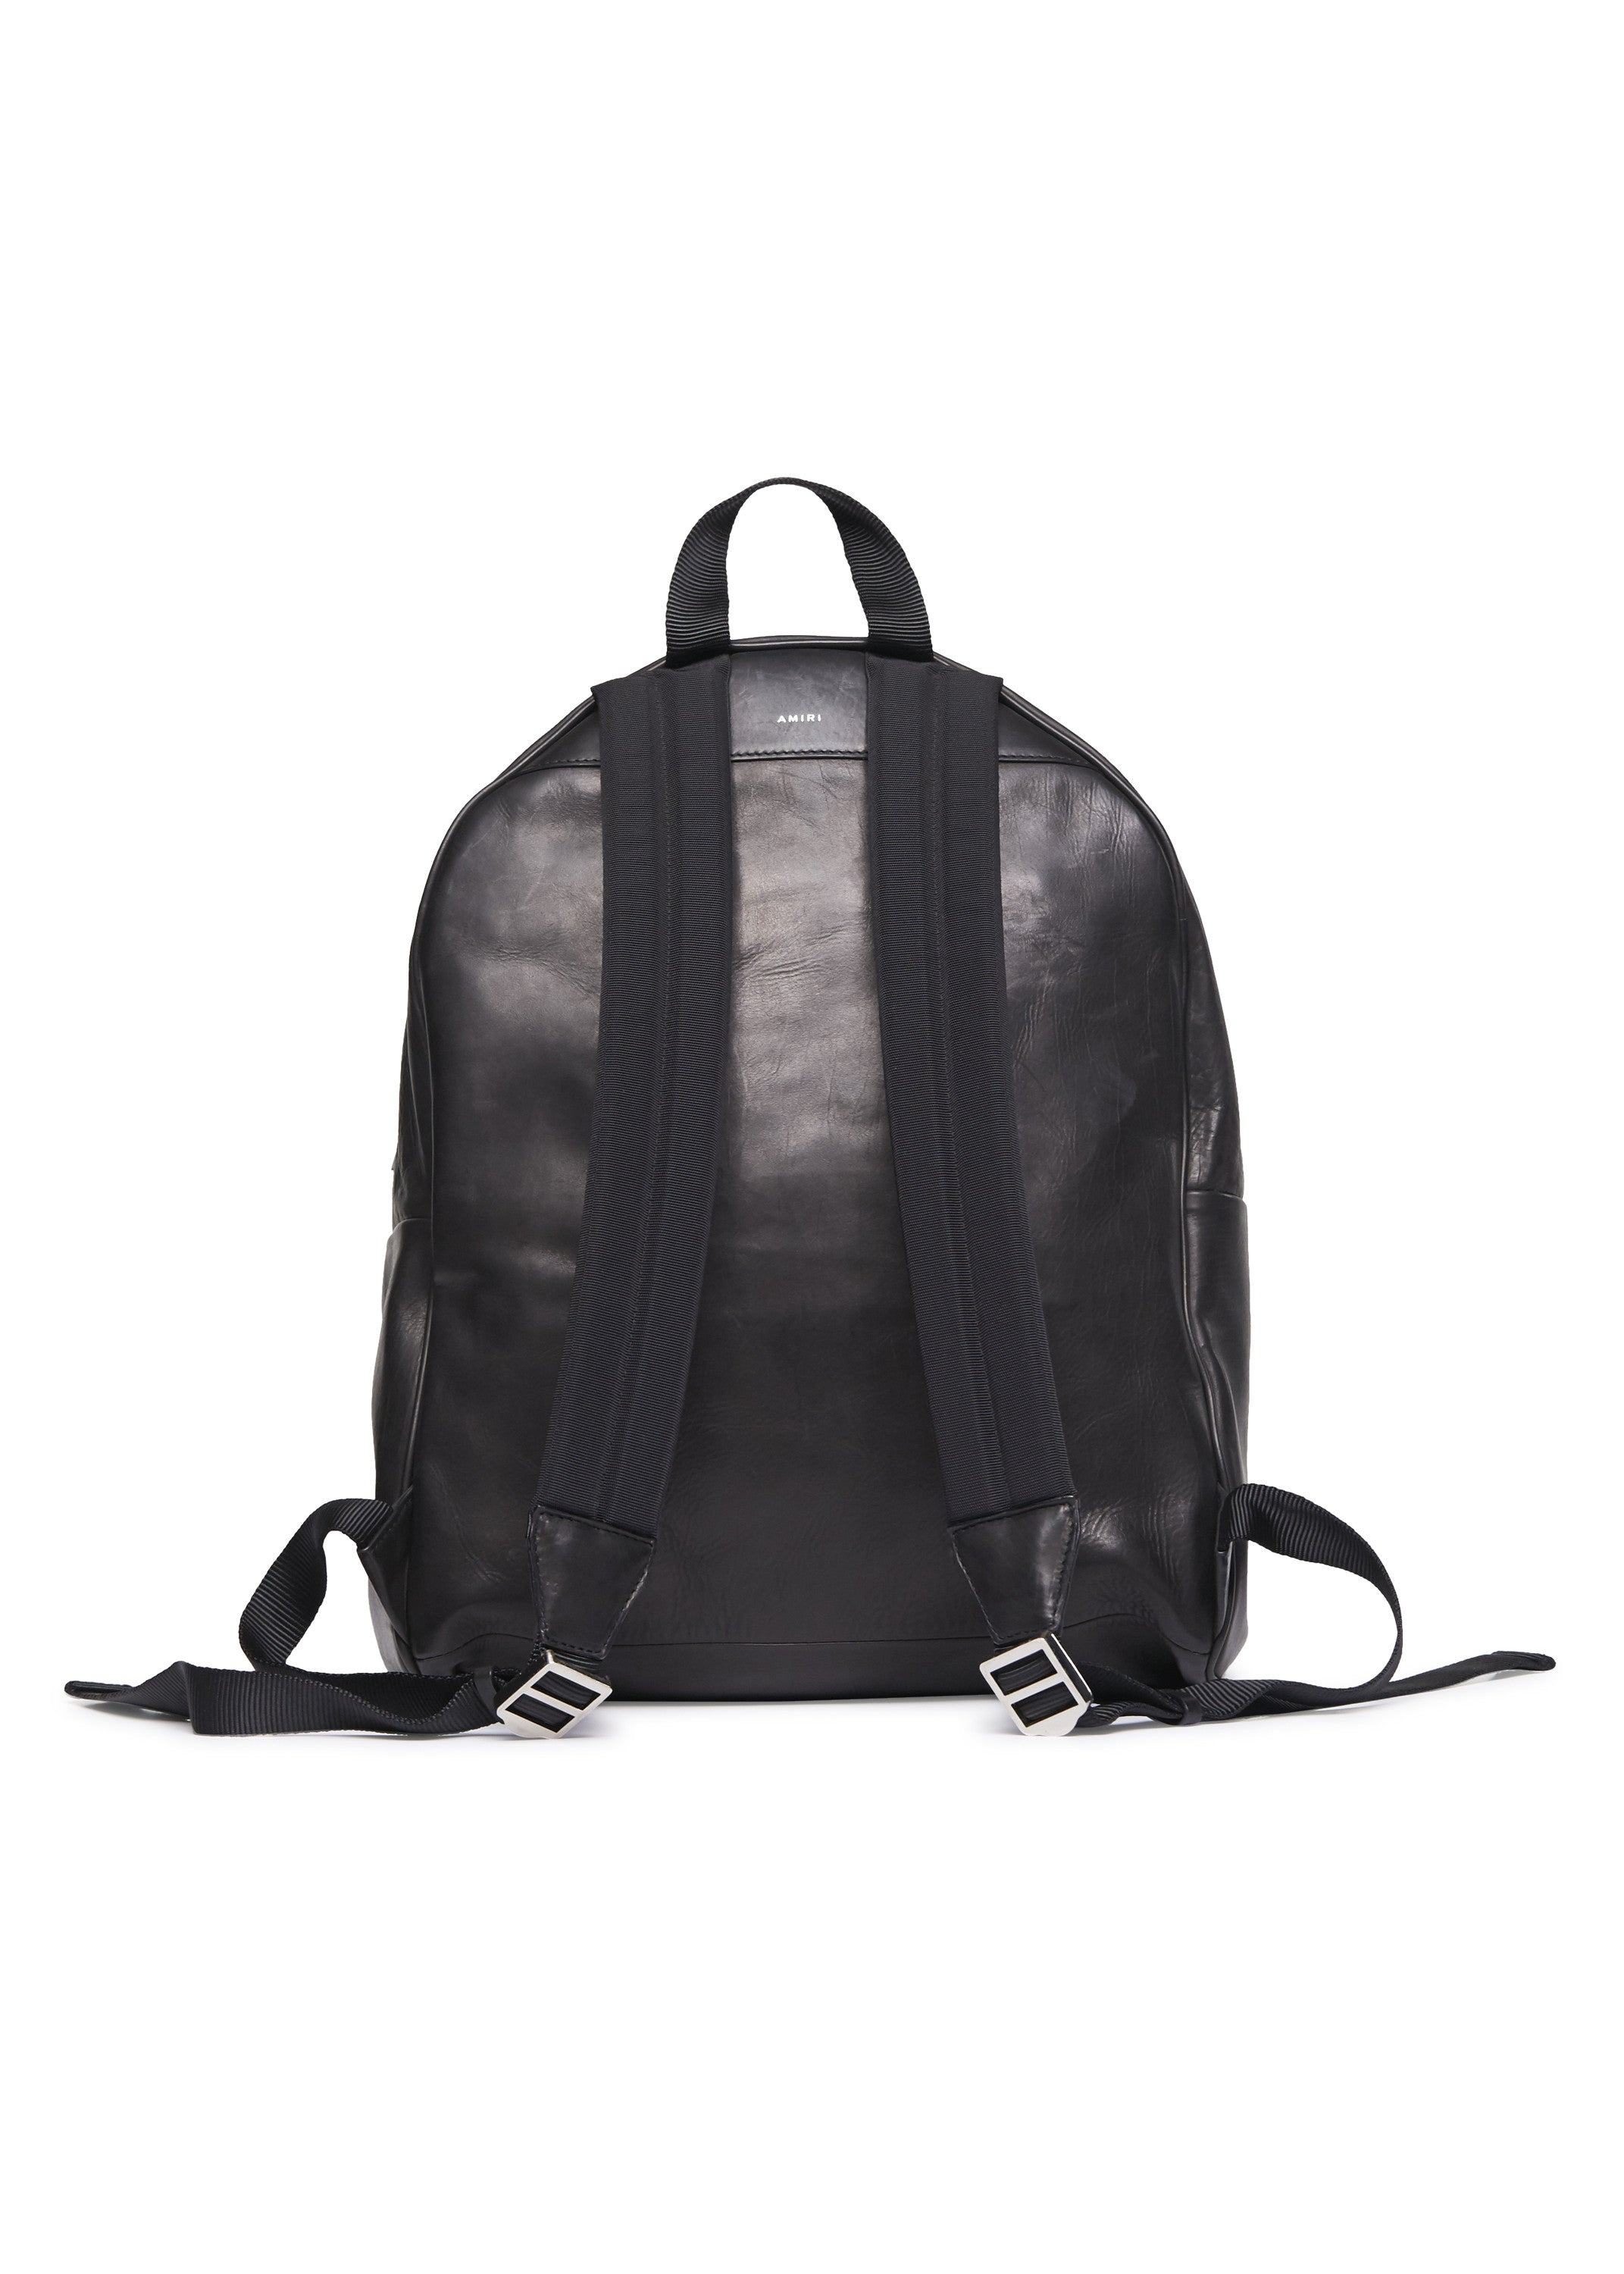 leather-backpack-image-2